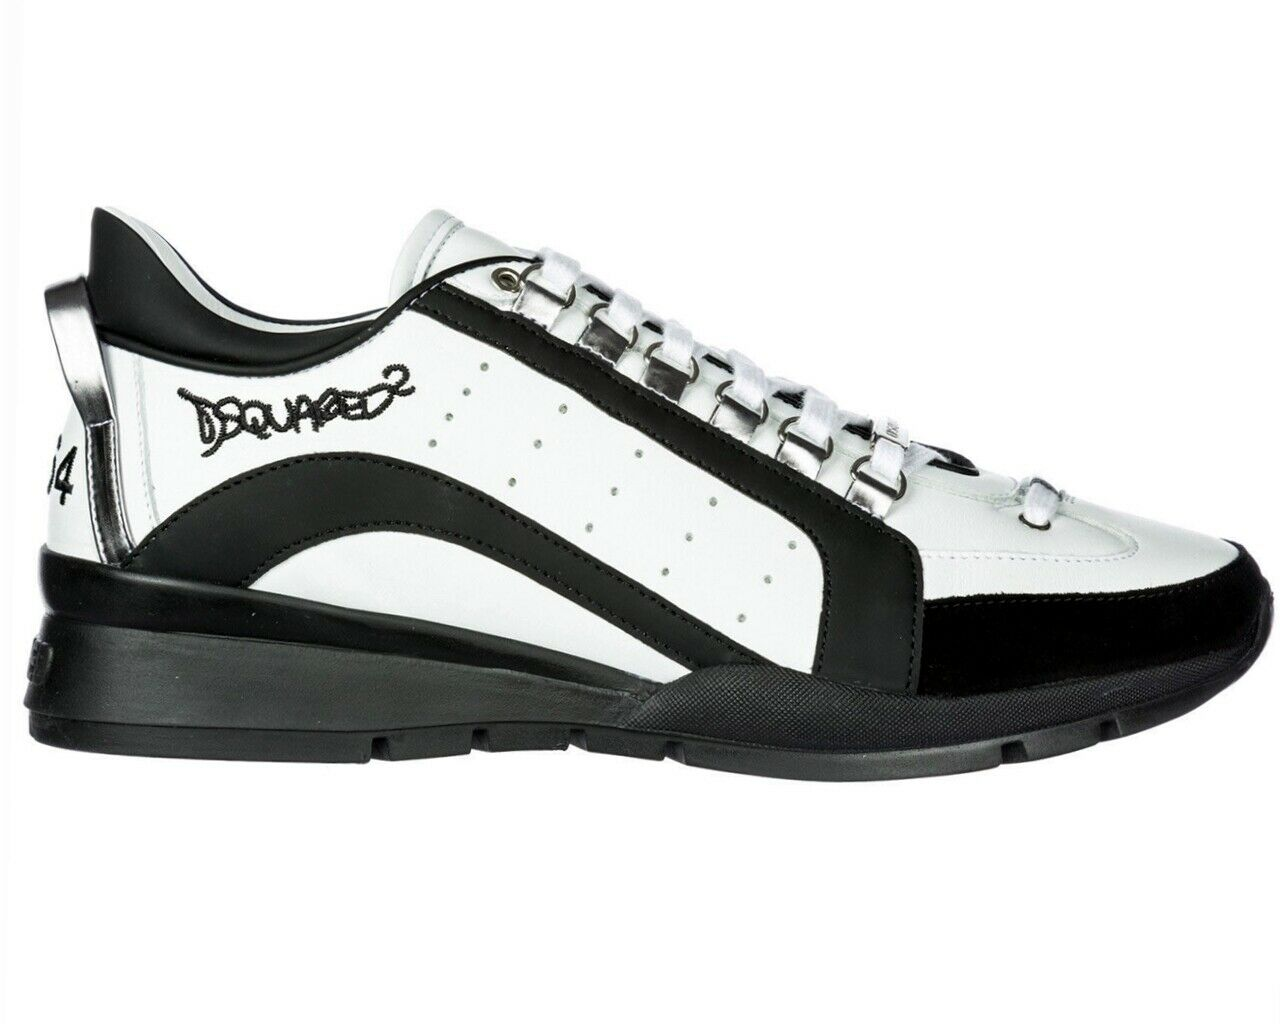 8b69886bc0a Dsquared2 551 shoes da Ginnastica Snm0404 M072 pelle men Dsquared Bianche